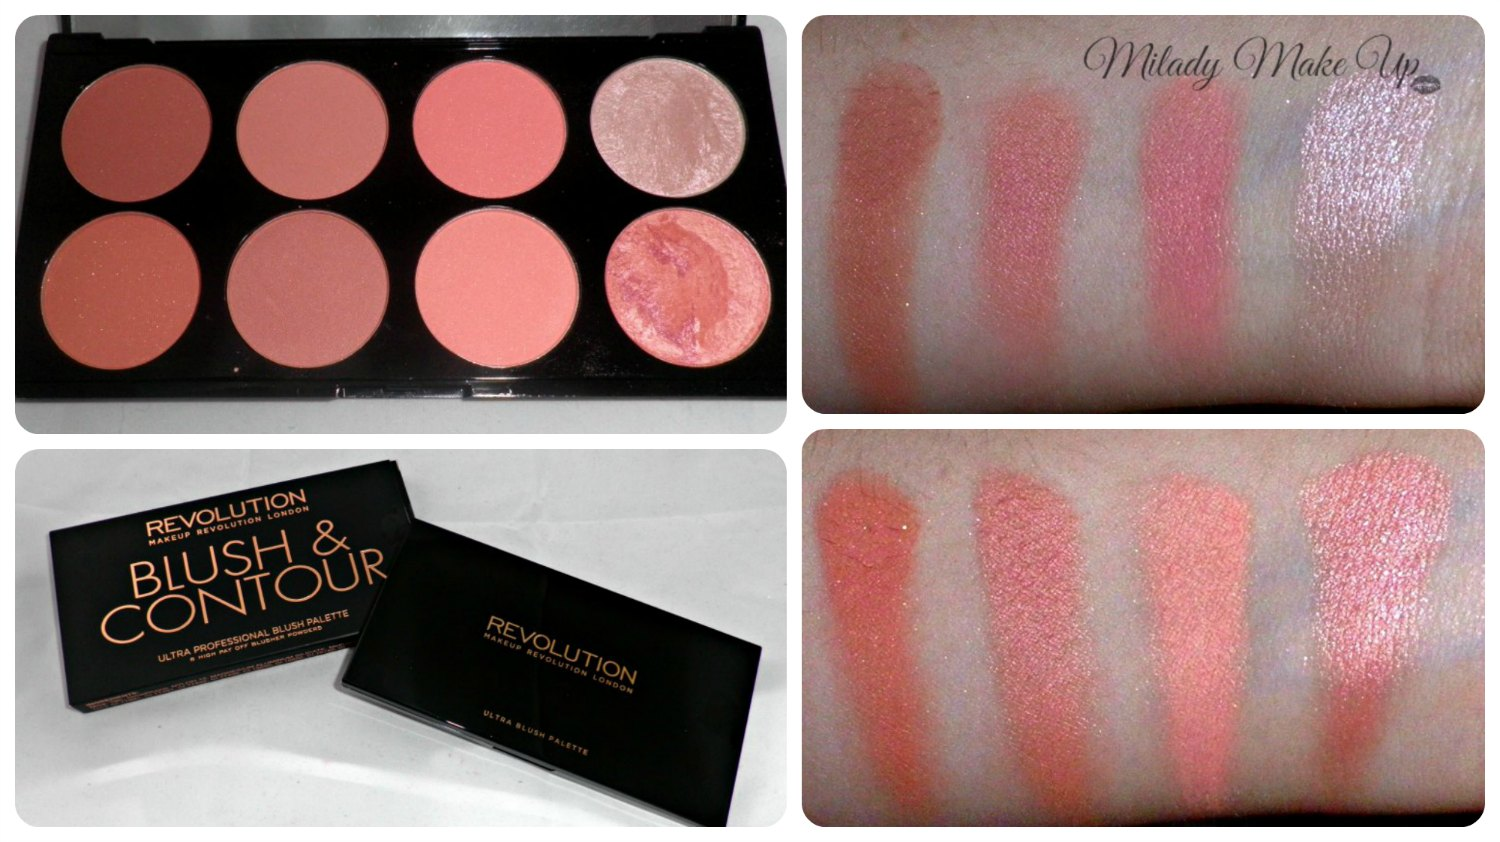 Blush and contour makeup revolution Hot Spice swatches